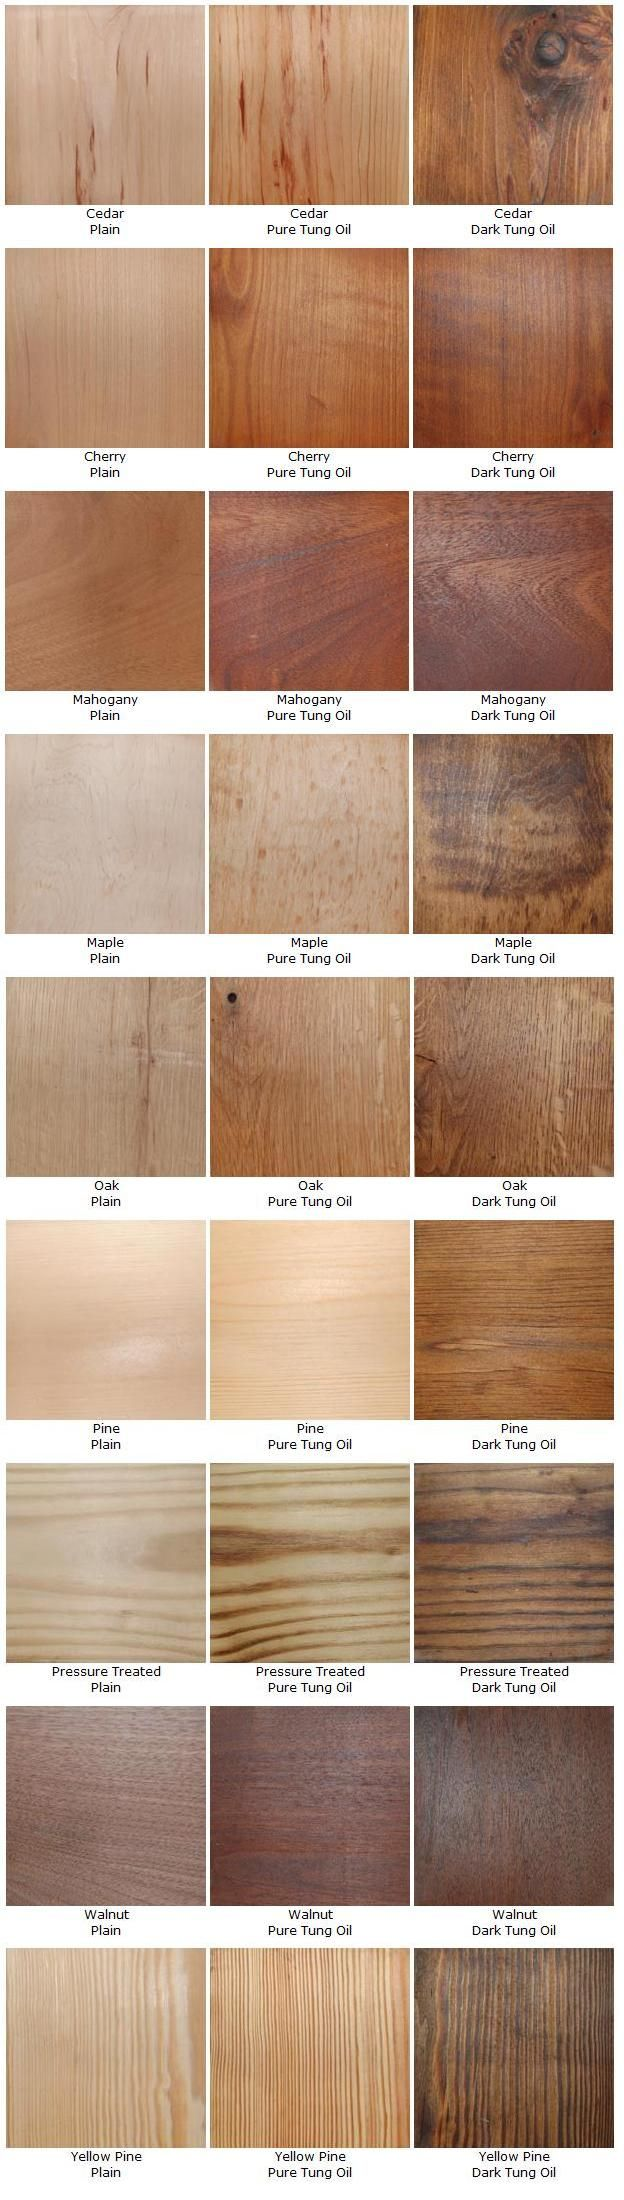 Tung oil vs danish oil - A Beautiful At A Glance Guide To The Various Wood Grains And Finishes Available For Acoustic Guitars Pure Vs Dark Tung Oil